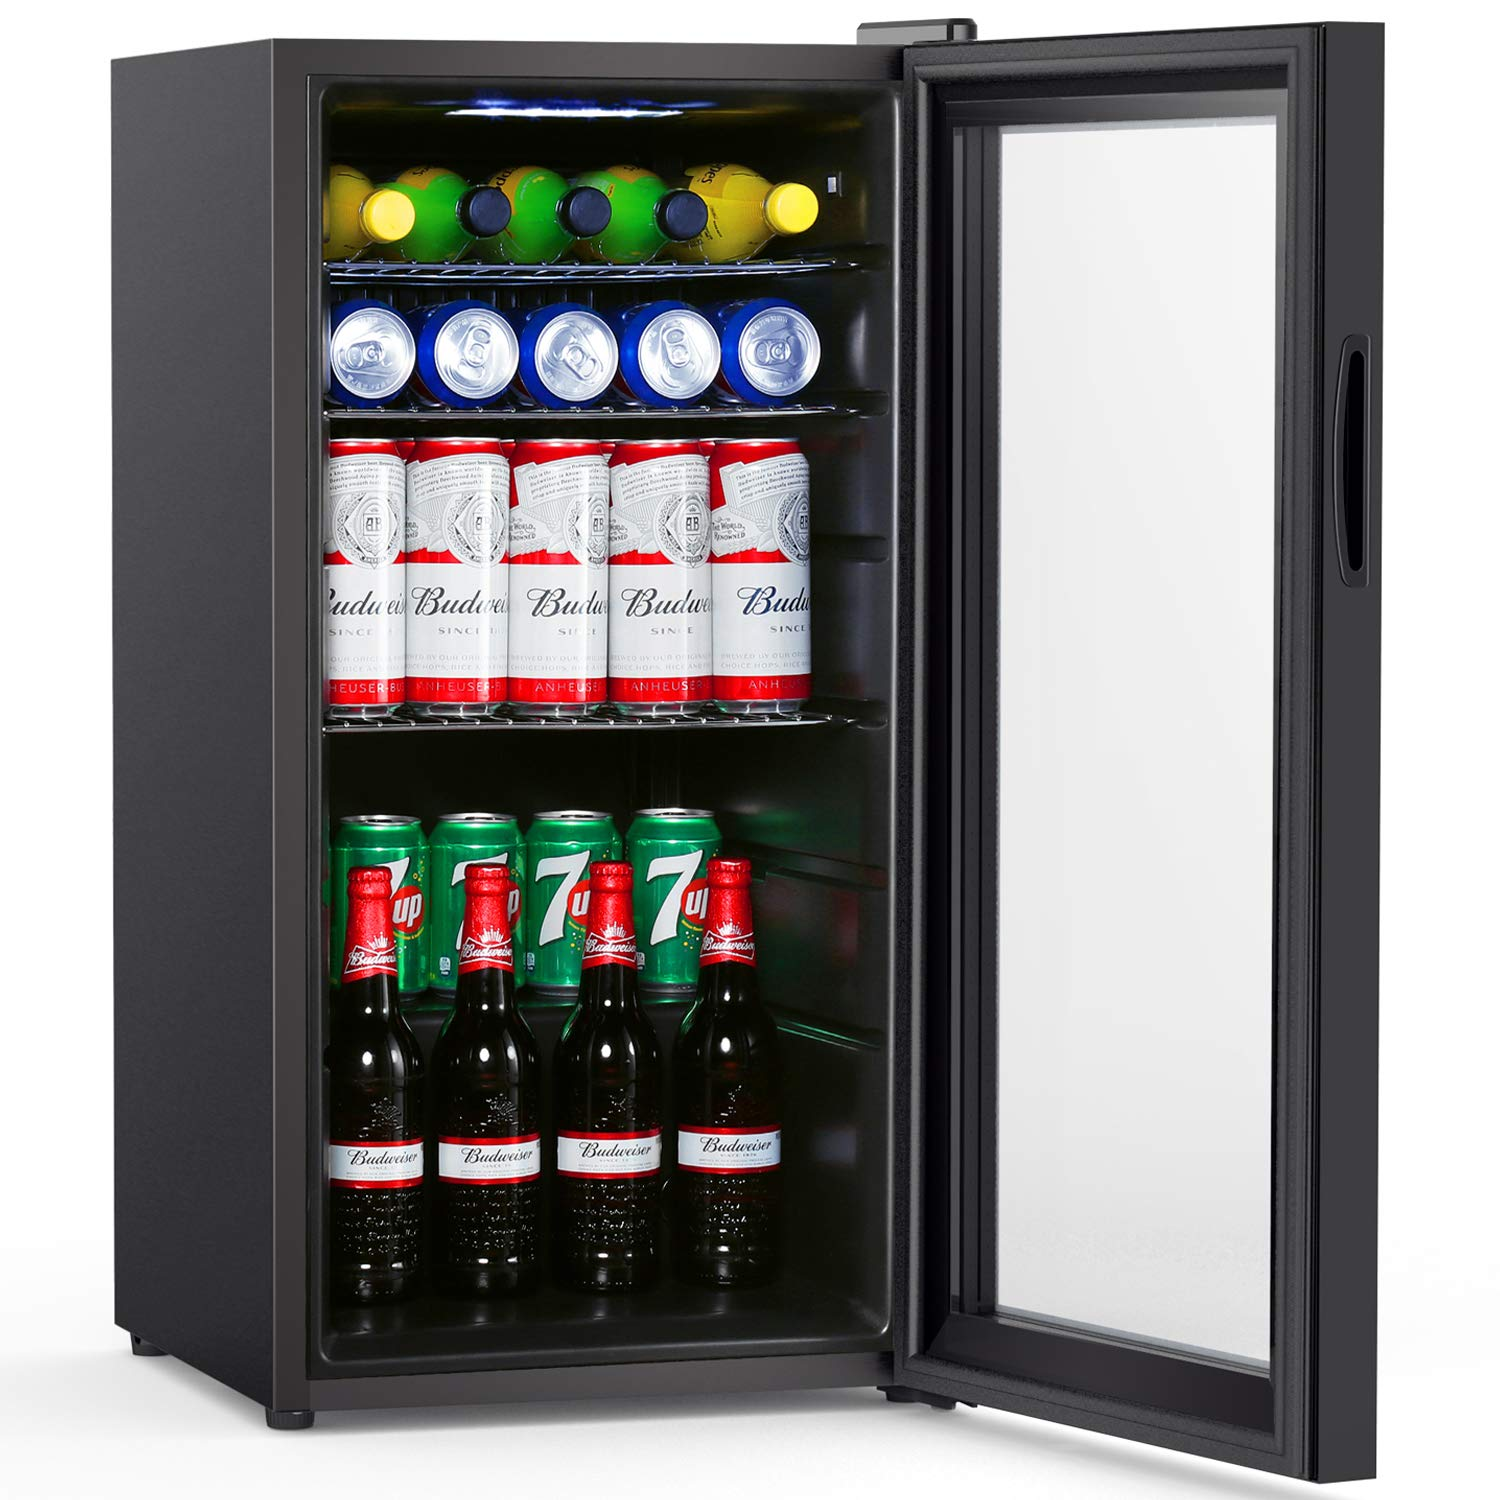 Colzer Beverage Refrigerator and Cooler - 2.9 Cu. Ft. Drink Fridge with Glass Door for Soda, Beer or Wine - Small Beverage Center with 6 Removable Shelves for Office/Man Cave/Basements/Home Bar by COLZER (Image #1)